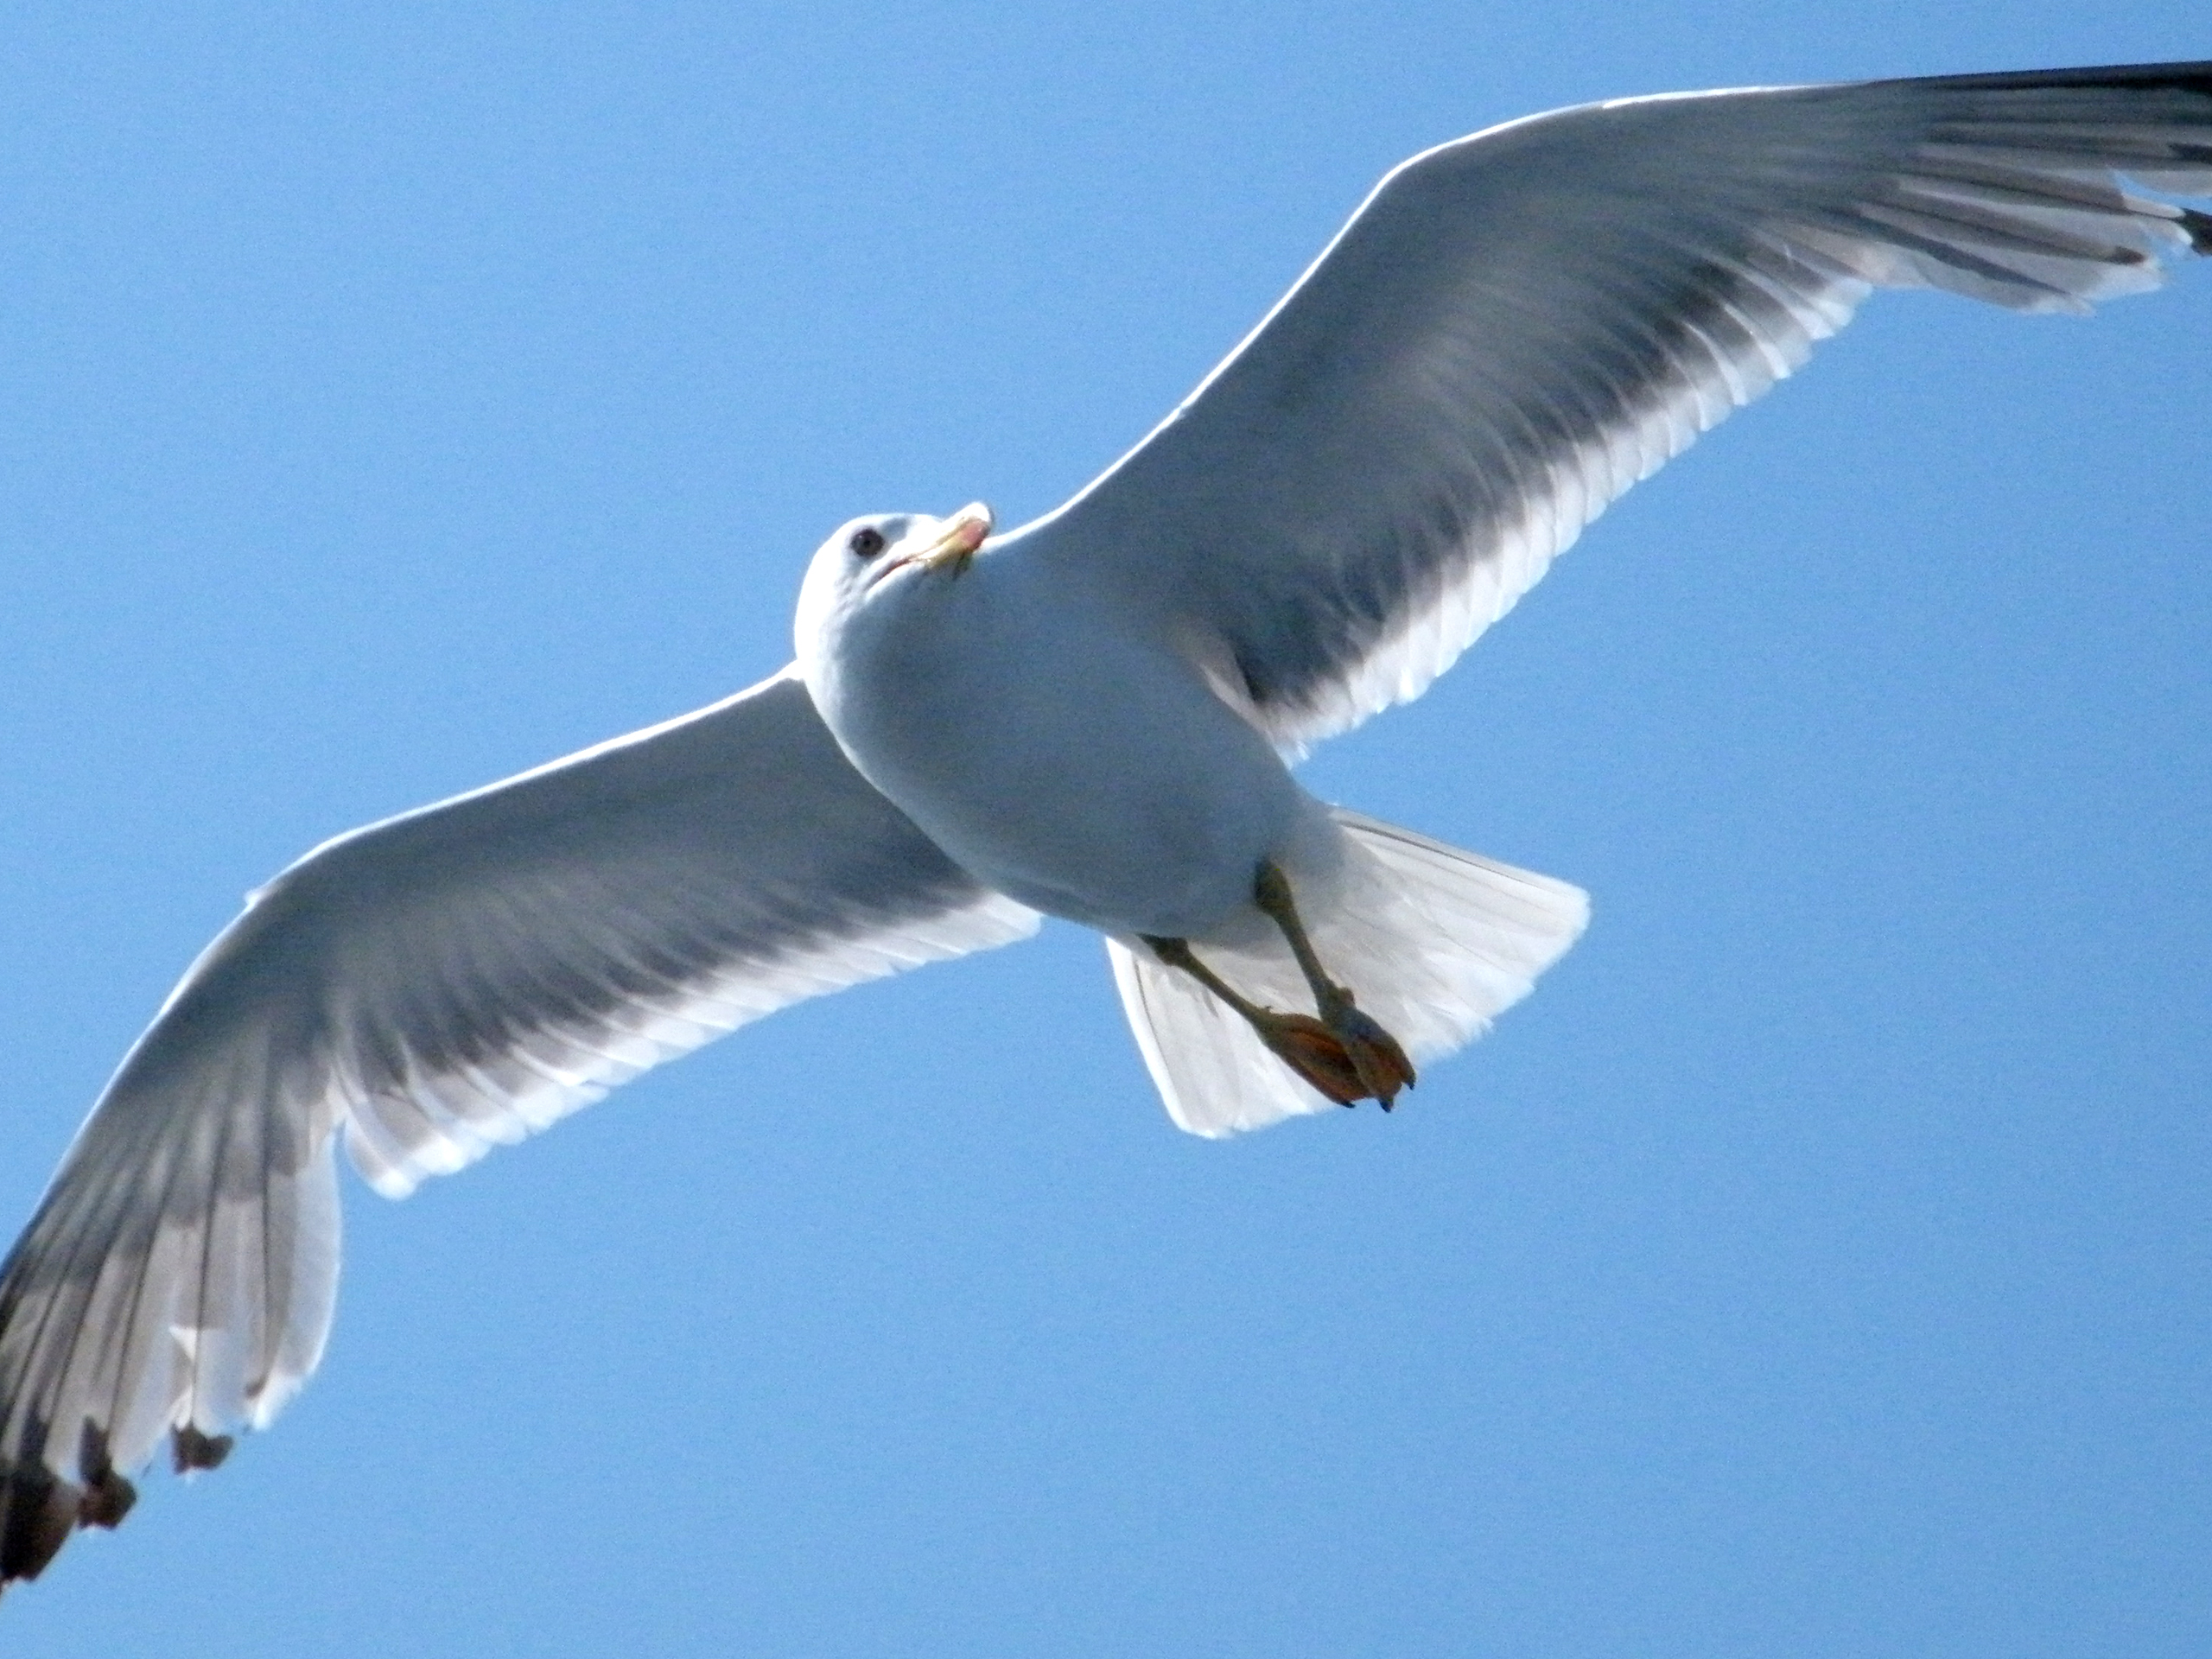 Seagull Flying wallpapers | Seagull Flying stock photos